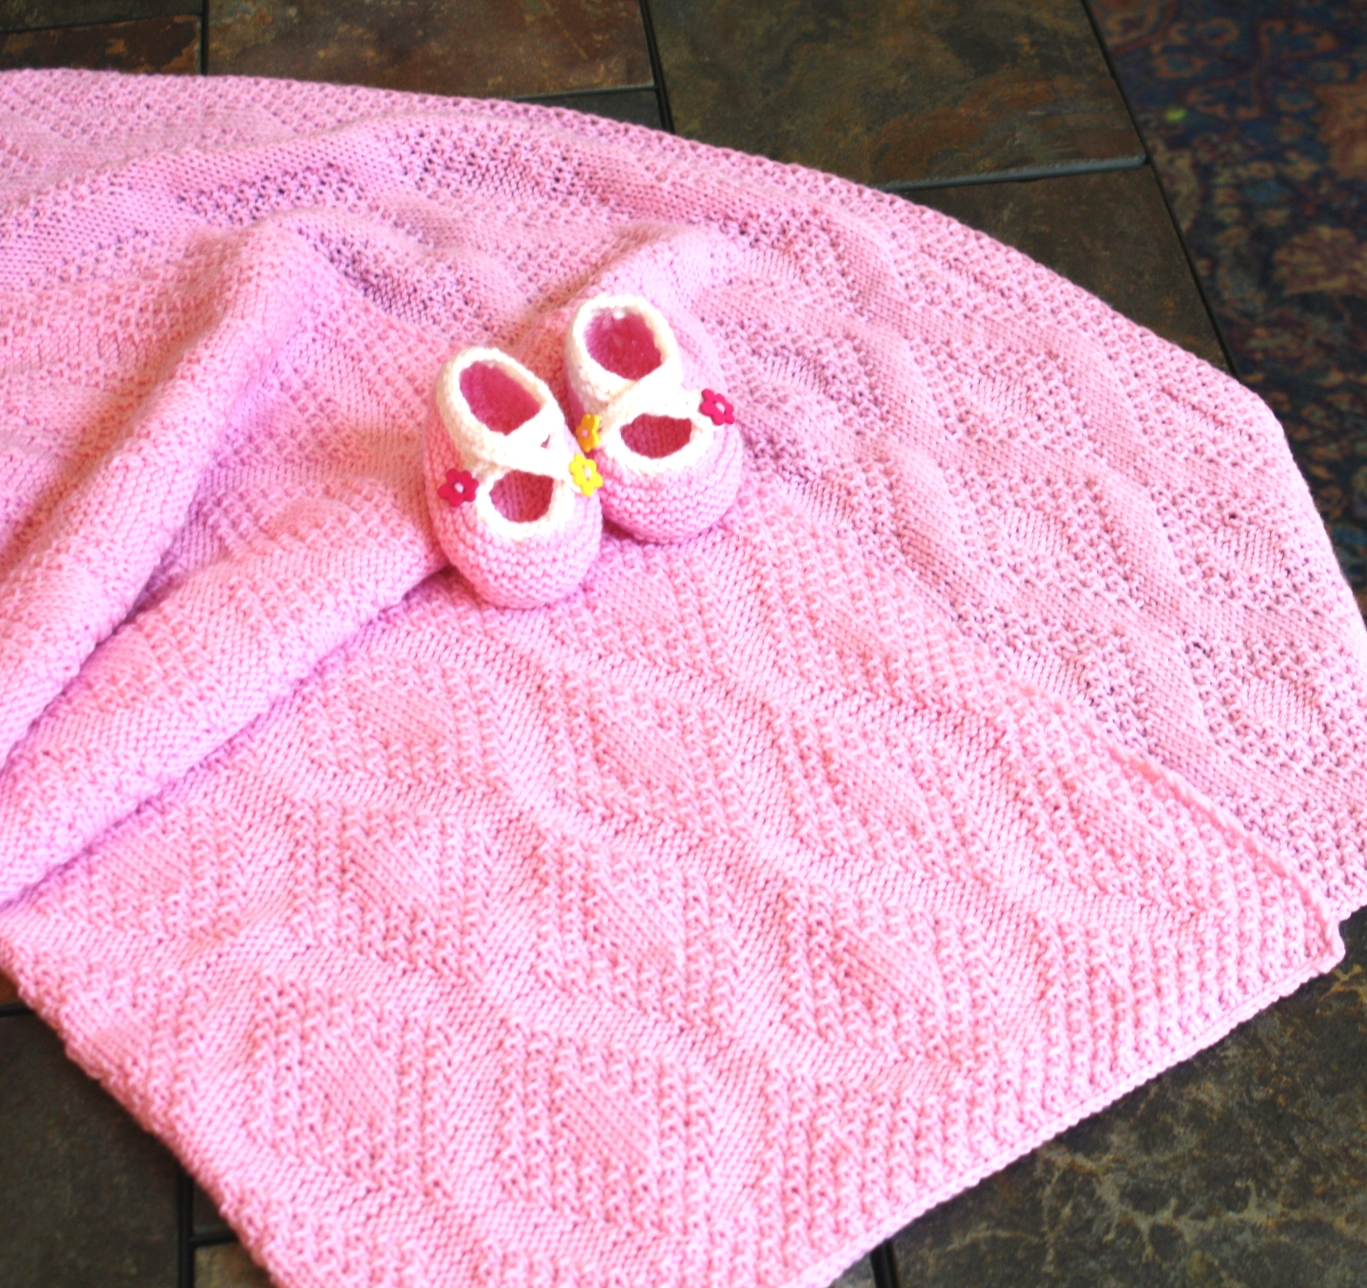 Baby Girl Blanket Knitting Patterns : All Knitted Lace: A year of Babies (and baby blankets)